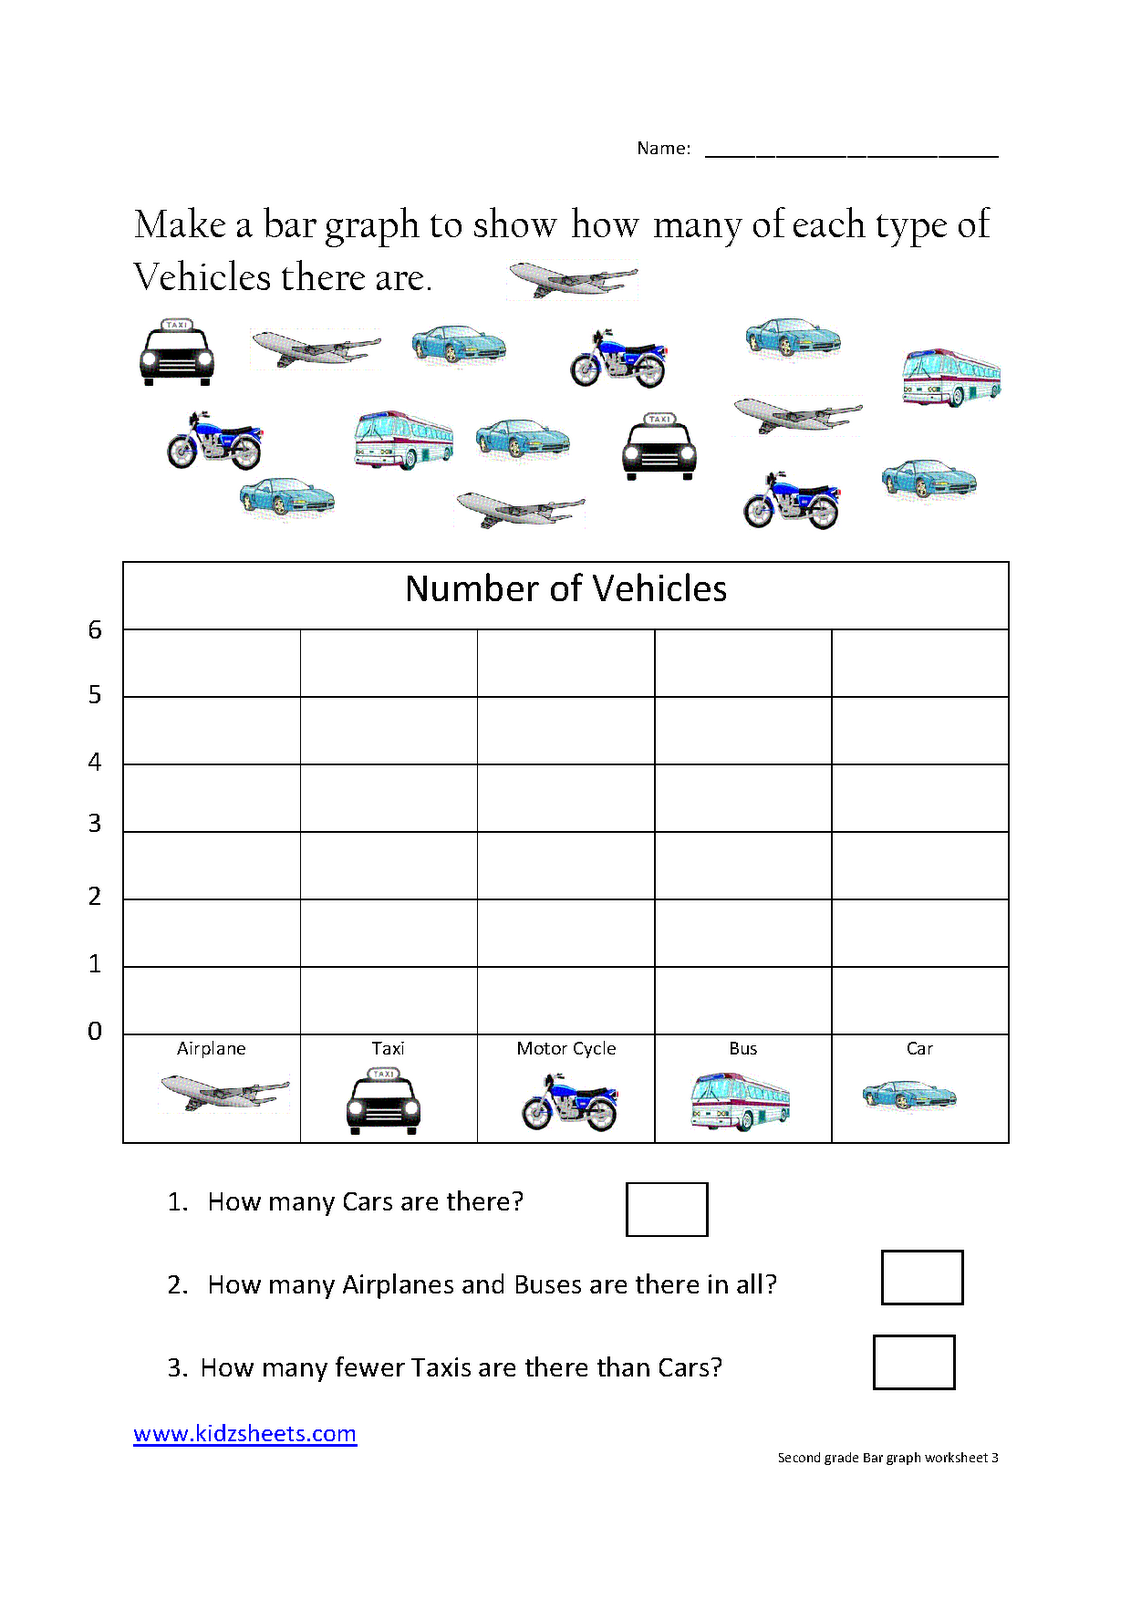 Second Grade Bar Graph Worksheet3